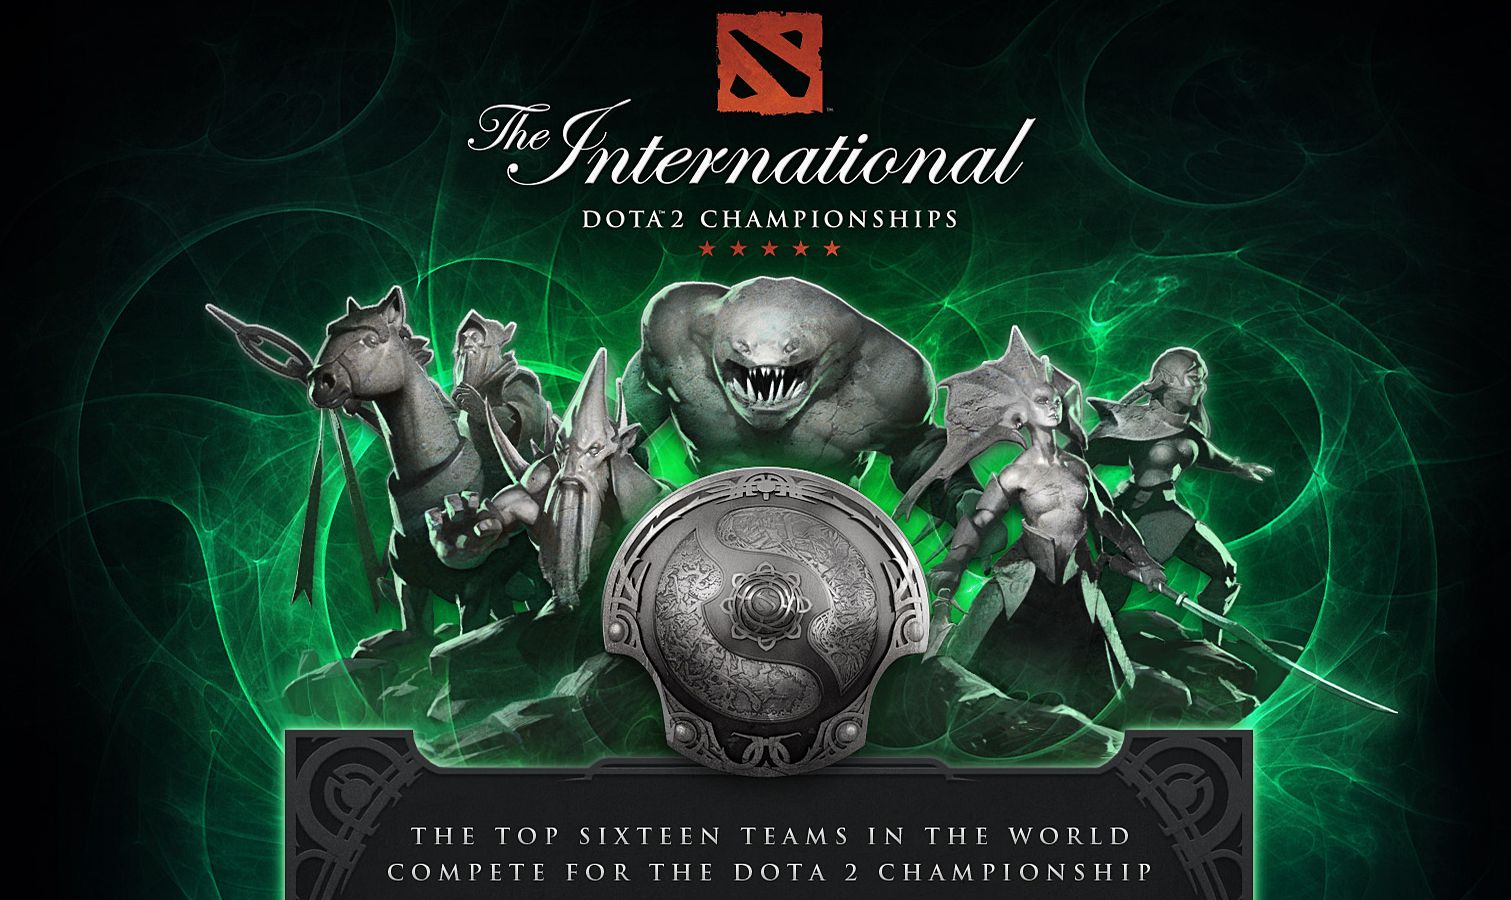 The International 2013 групповой этап